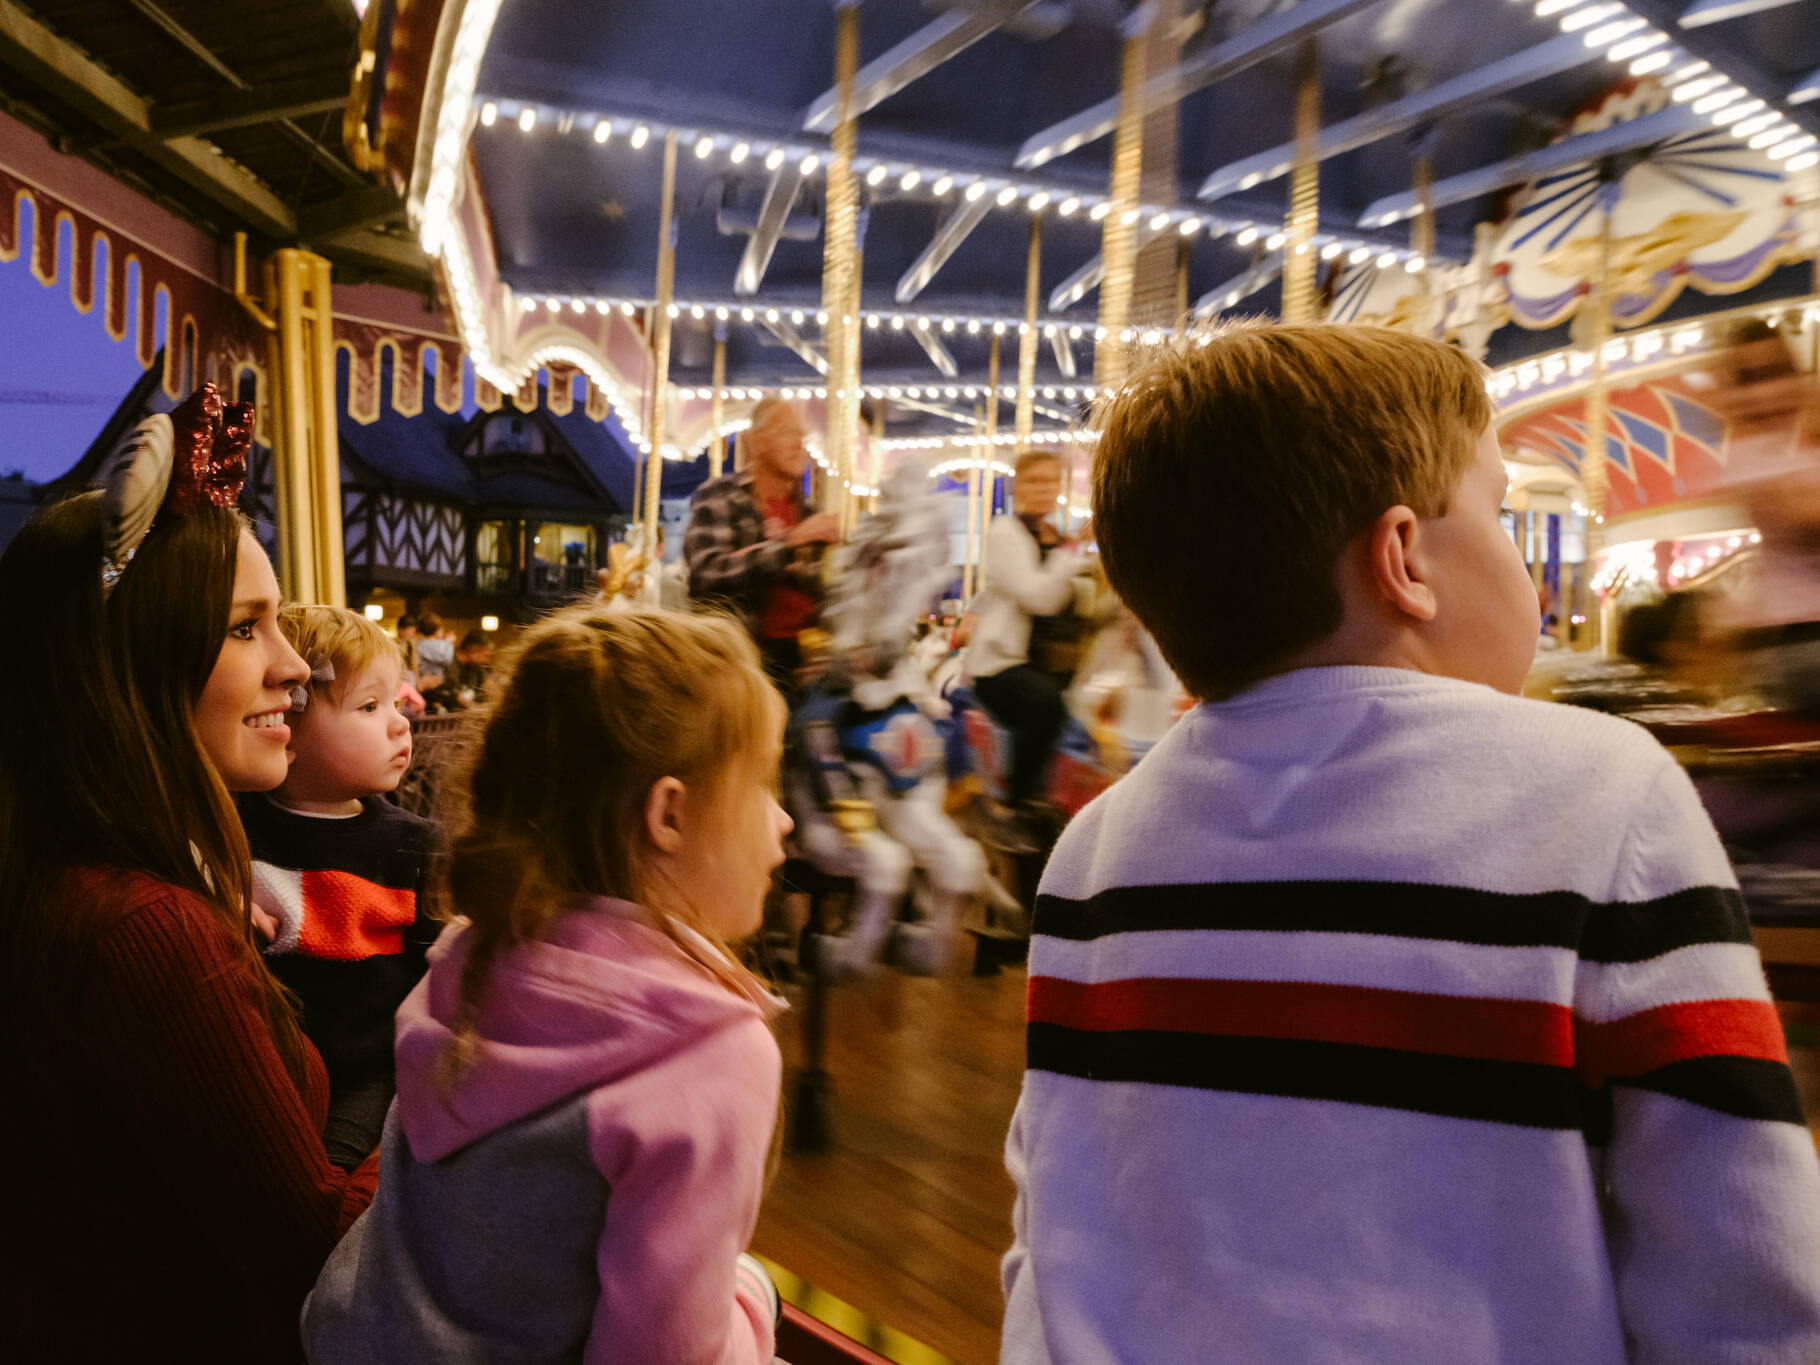 family views the carousel while waiting in line